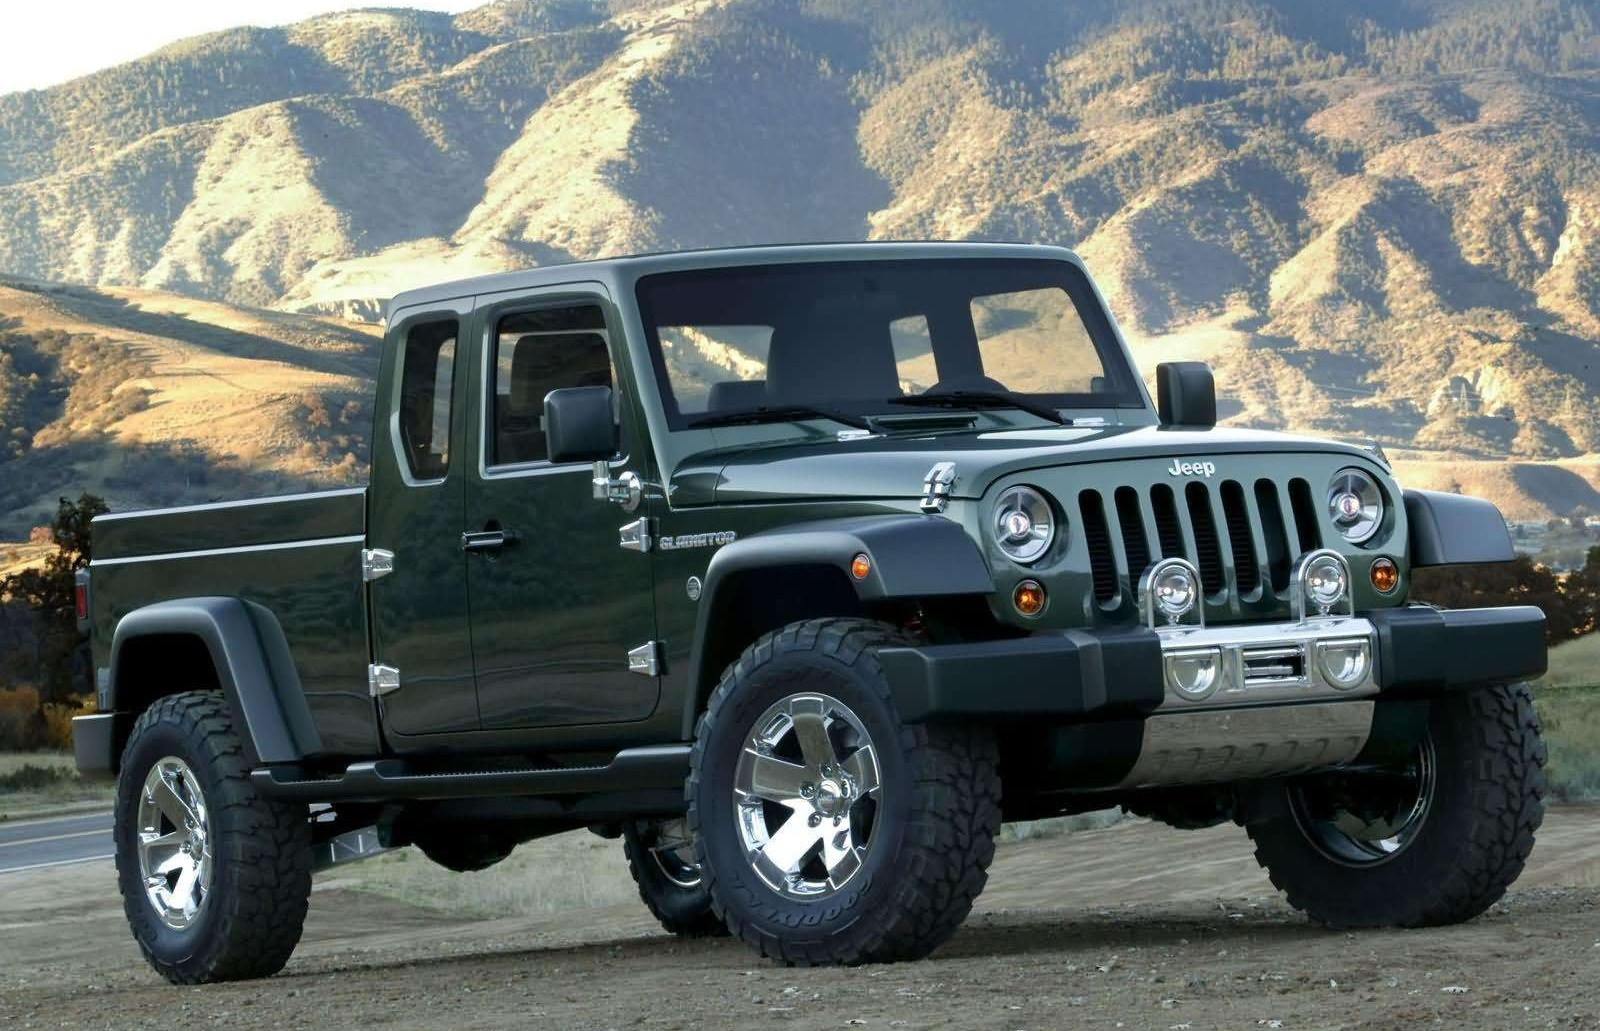 Union: Fiat says Jeep Wrangler staying in Ohio, not Cherokee